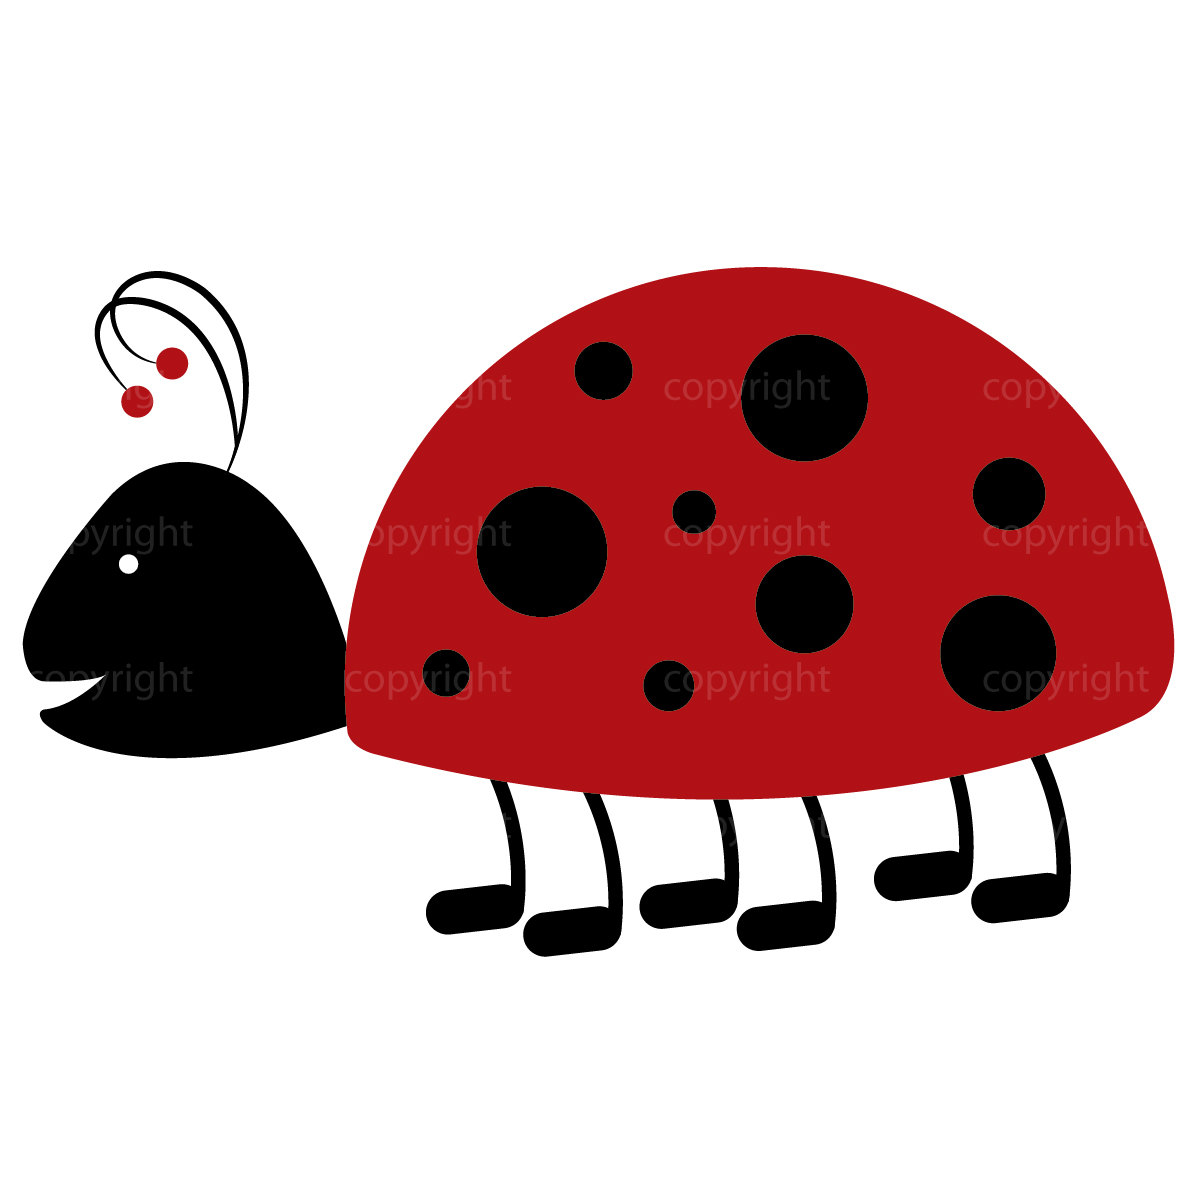 1200x1200 Ladybug Clipart Commercial Use Whimsical Art Love Bug Garden